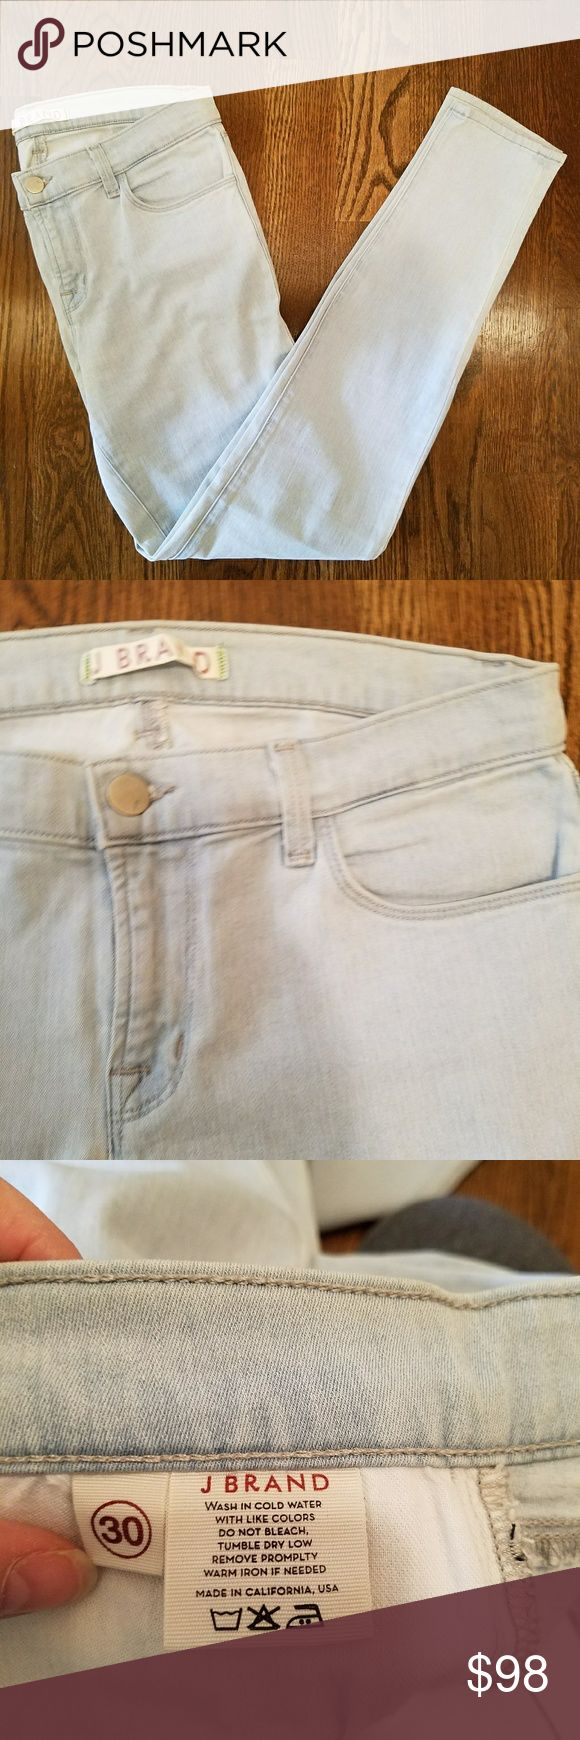 JBrand Light Wash Skinny Jean Pale blue light wash skinny jean in size 30! Perfect condition! Never been worn. Will accept reasonable offers. J Brand Jeans Skinny